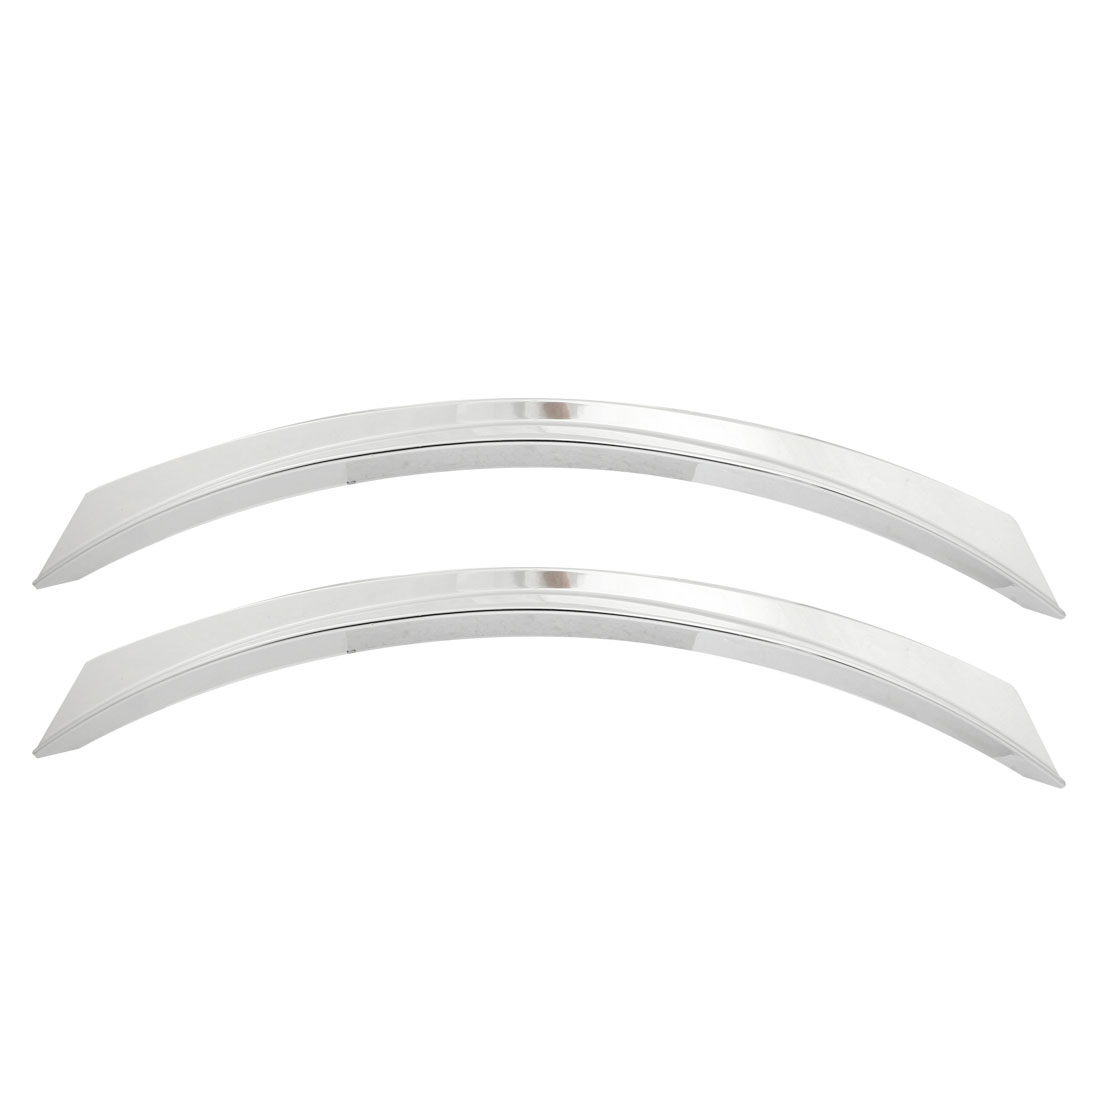 2 Pcs Silver Tone Chrome Plated Plastic Car Decorative Wheel Strip Eyebrow Sticker